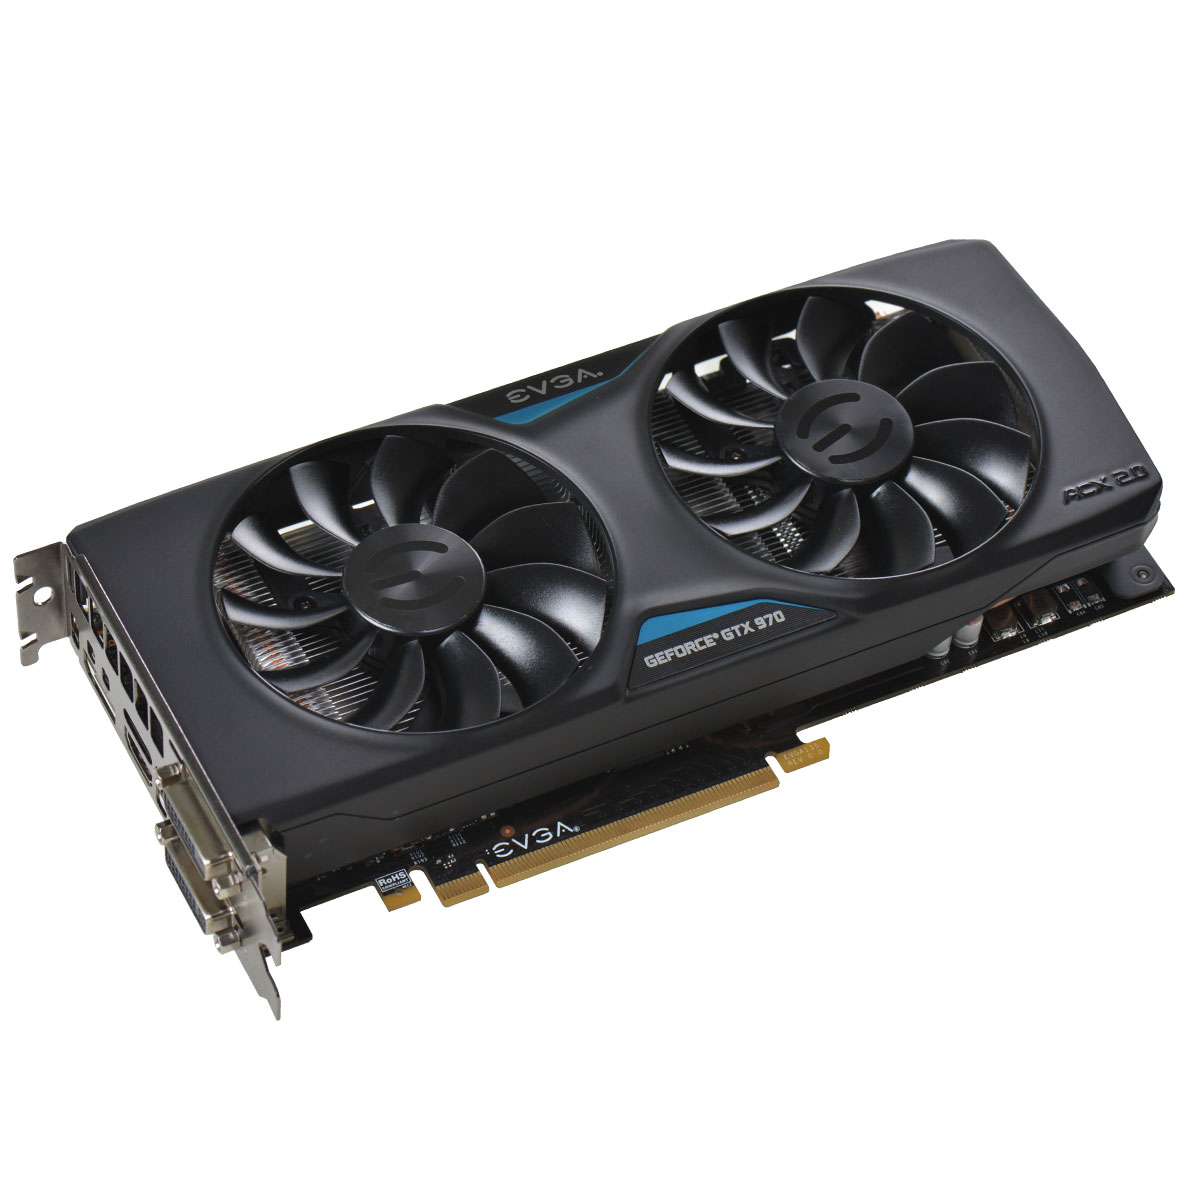 Placa de Vídeo Geforce GTX970 4GB SuperClock DDR5 256Bits 04G-P4-2975-KR - EVGA